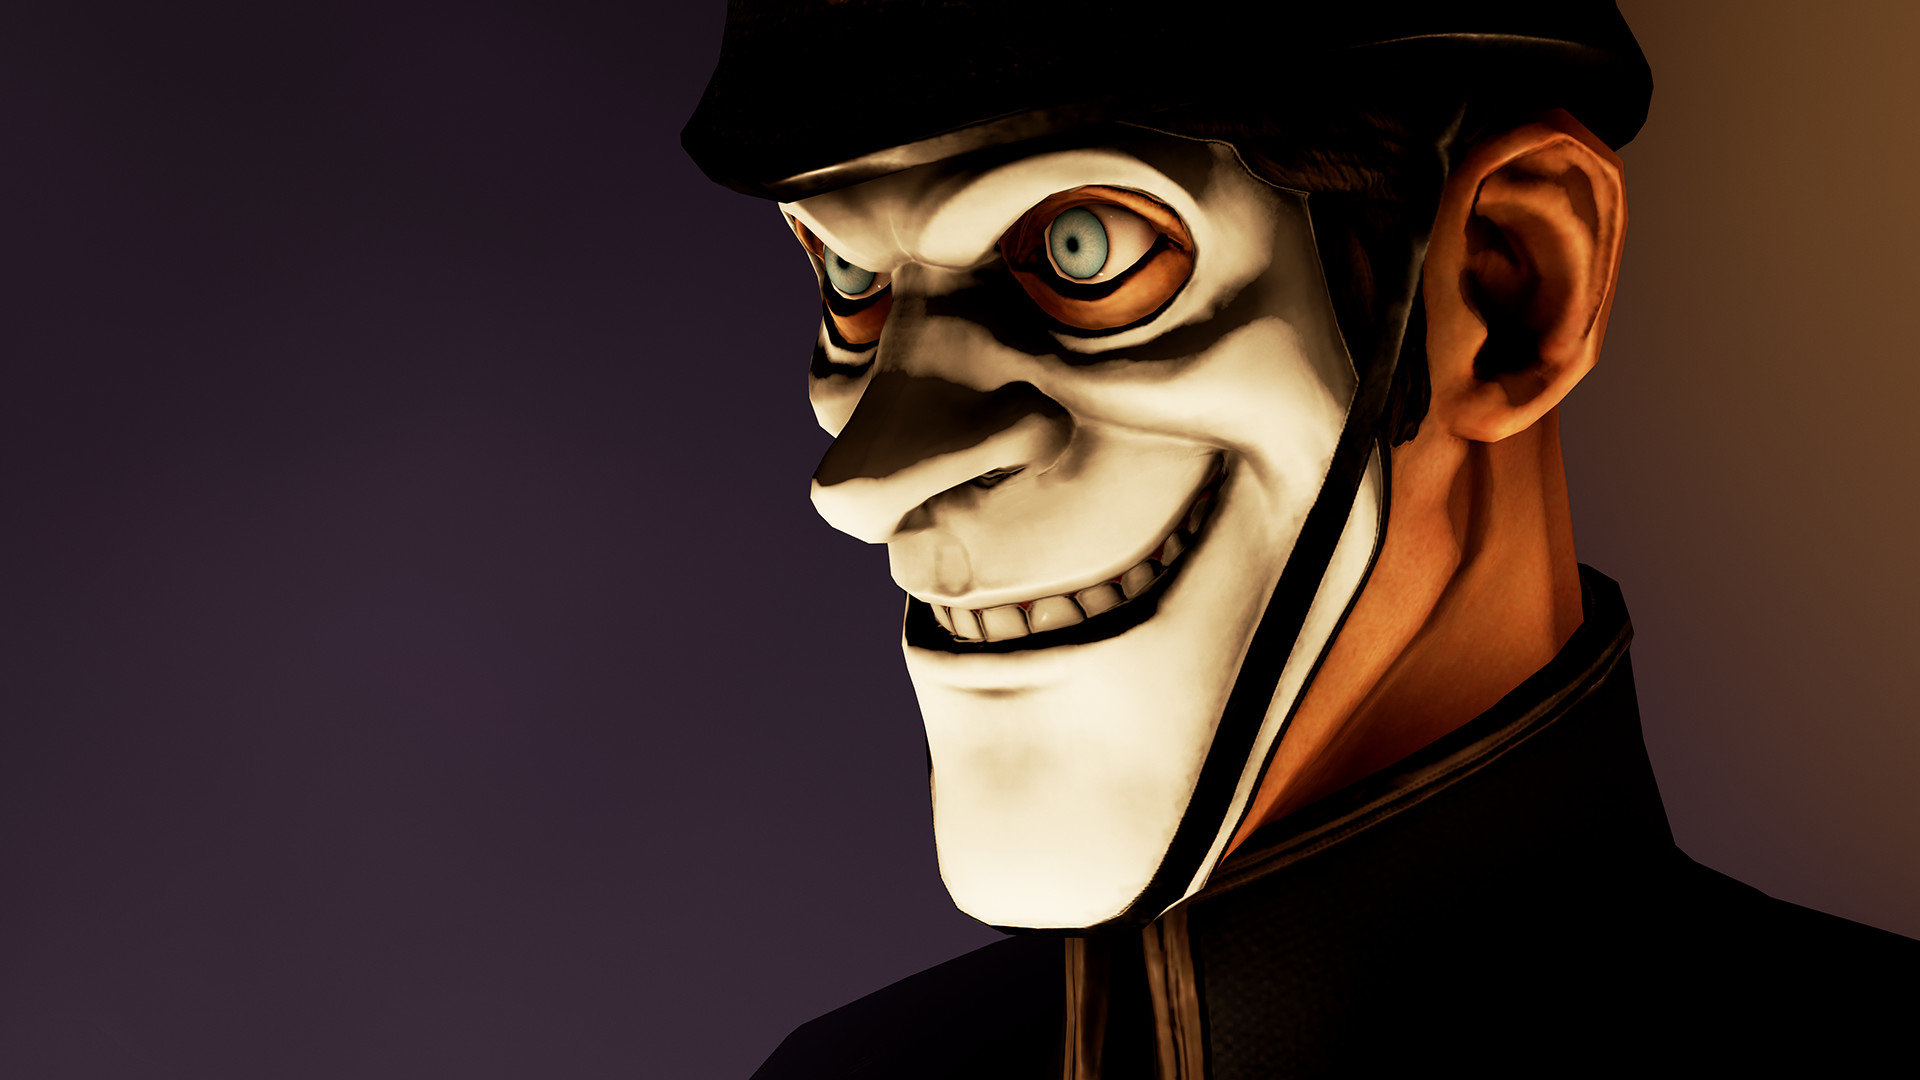 Awesome We Happy Few free wallpaper ID:325460 for full hd 1920x1080 computer